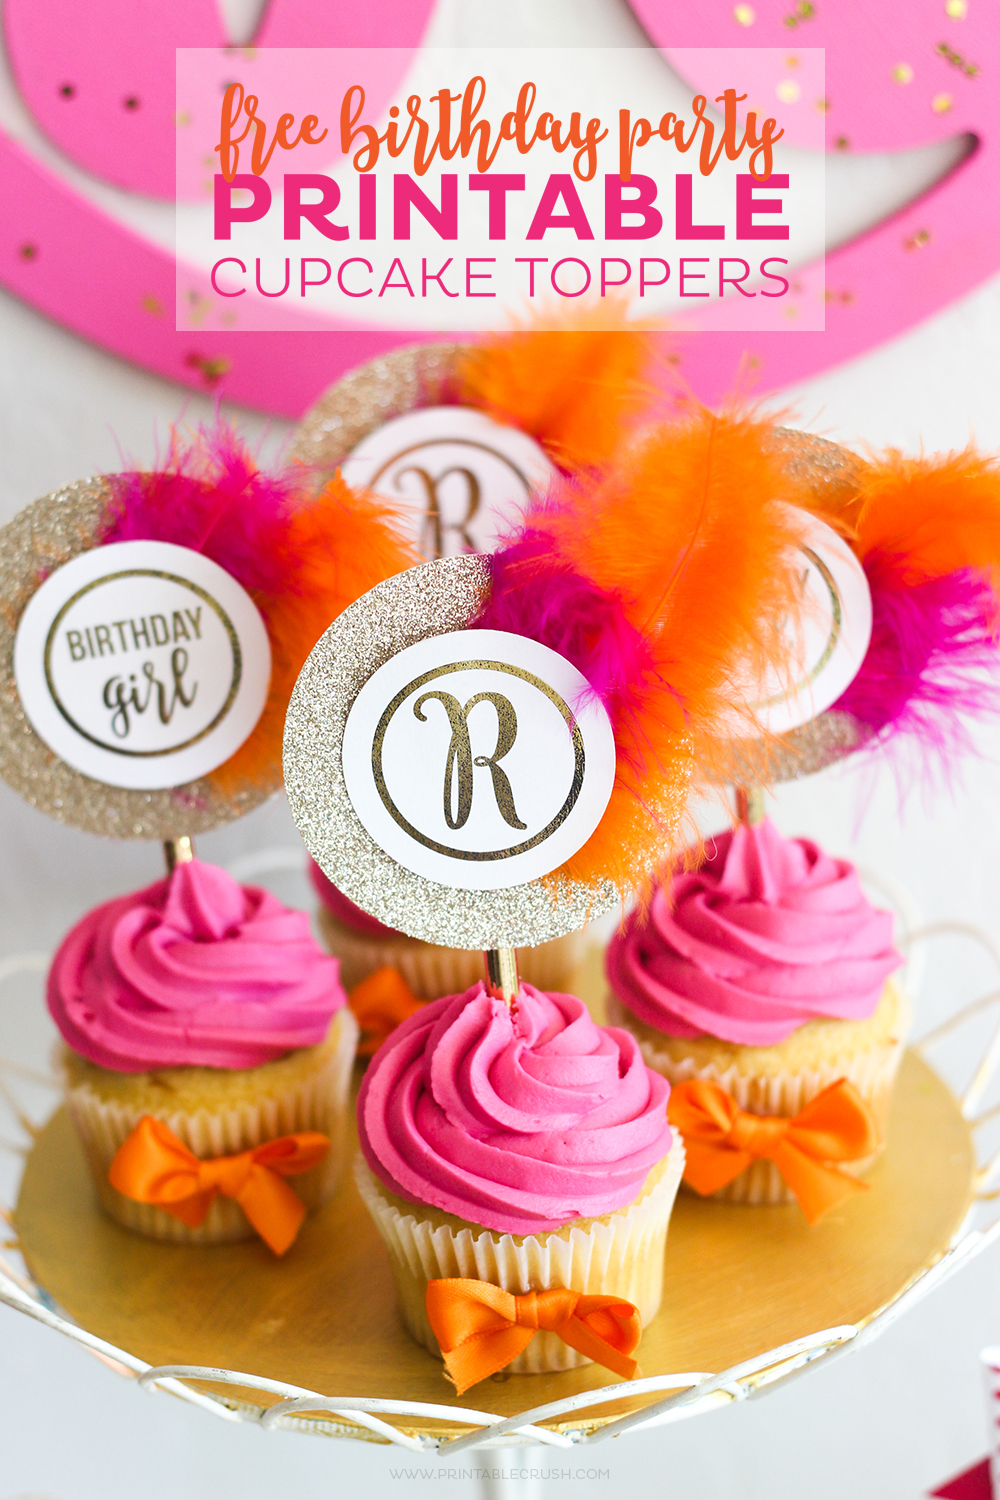 graphic about Printable Cupcakes Toppers identified as No cost Monogram Printable Cupcake Toppers - Printable Crush